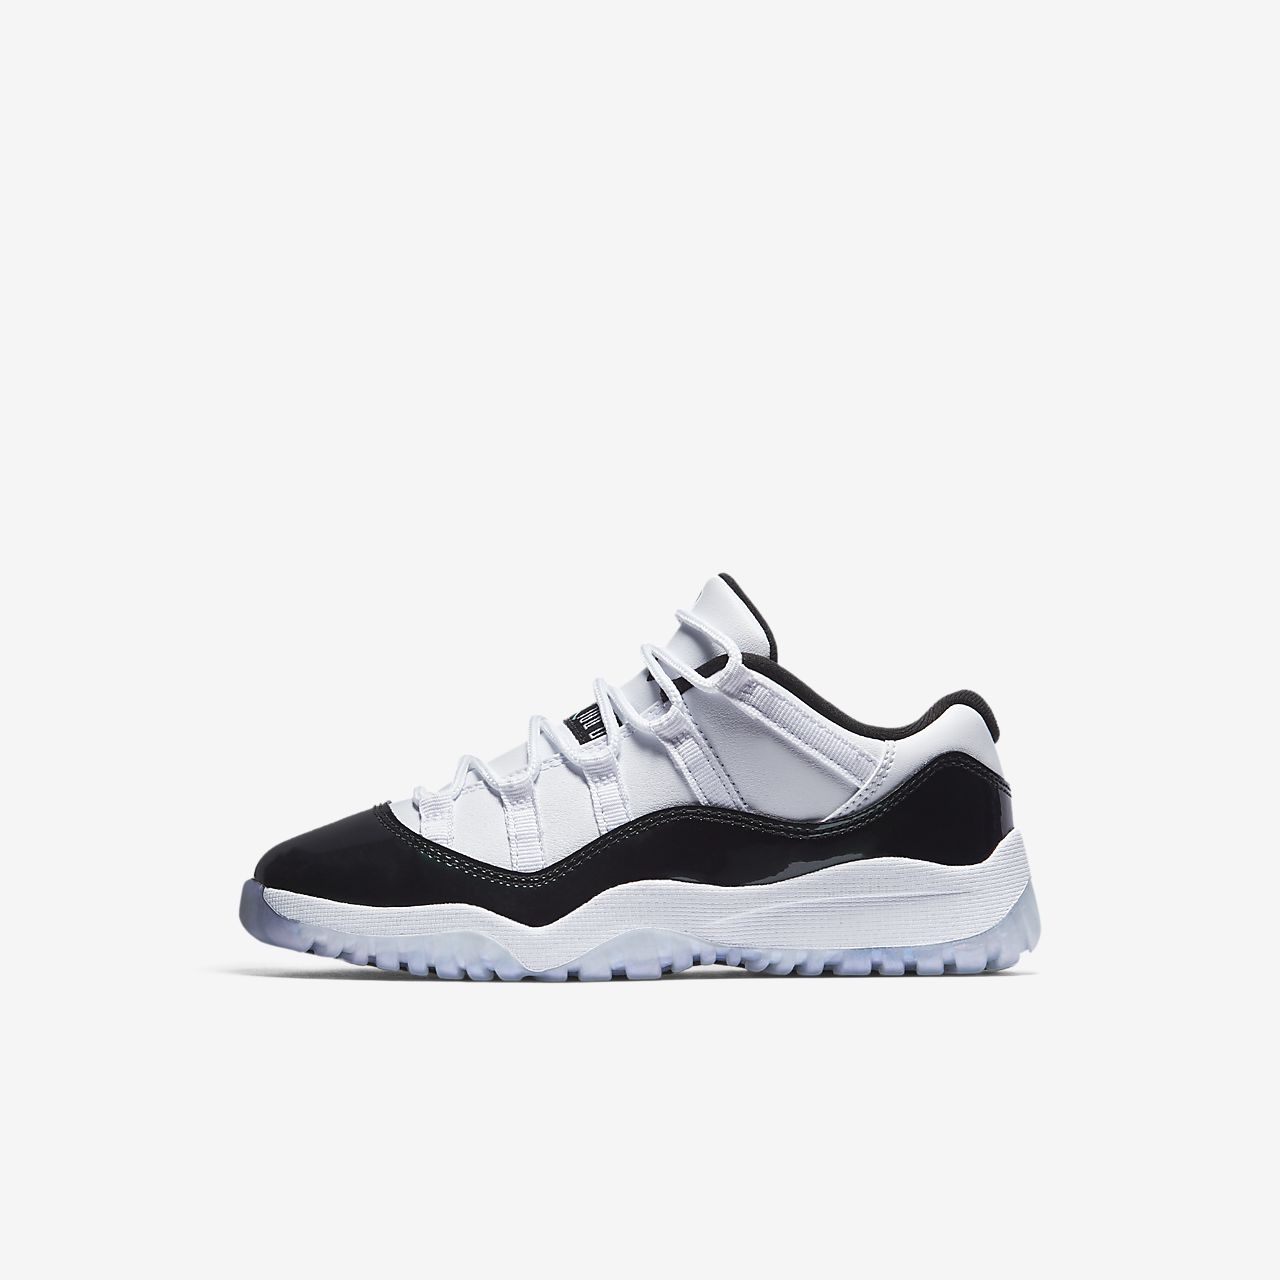 ... Air Jordan Retro 11 Low Little Kids' Shoe